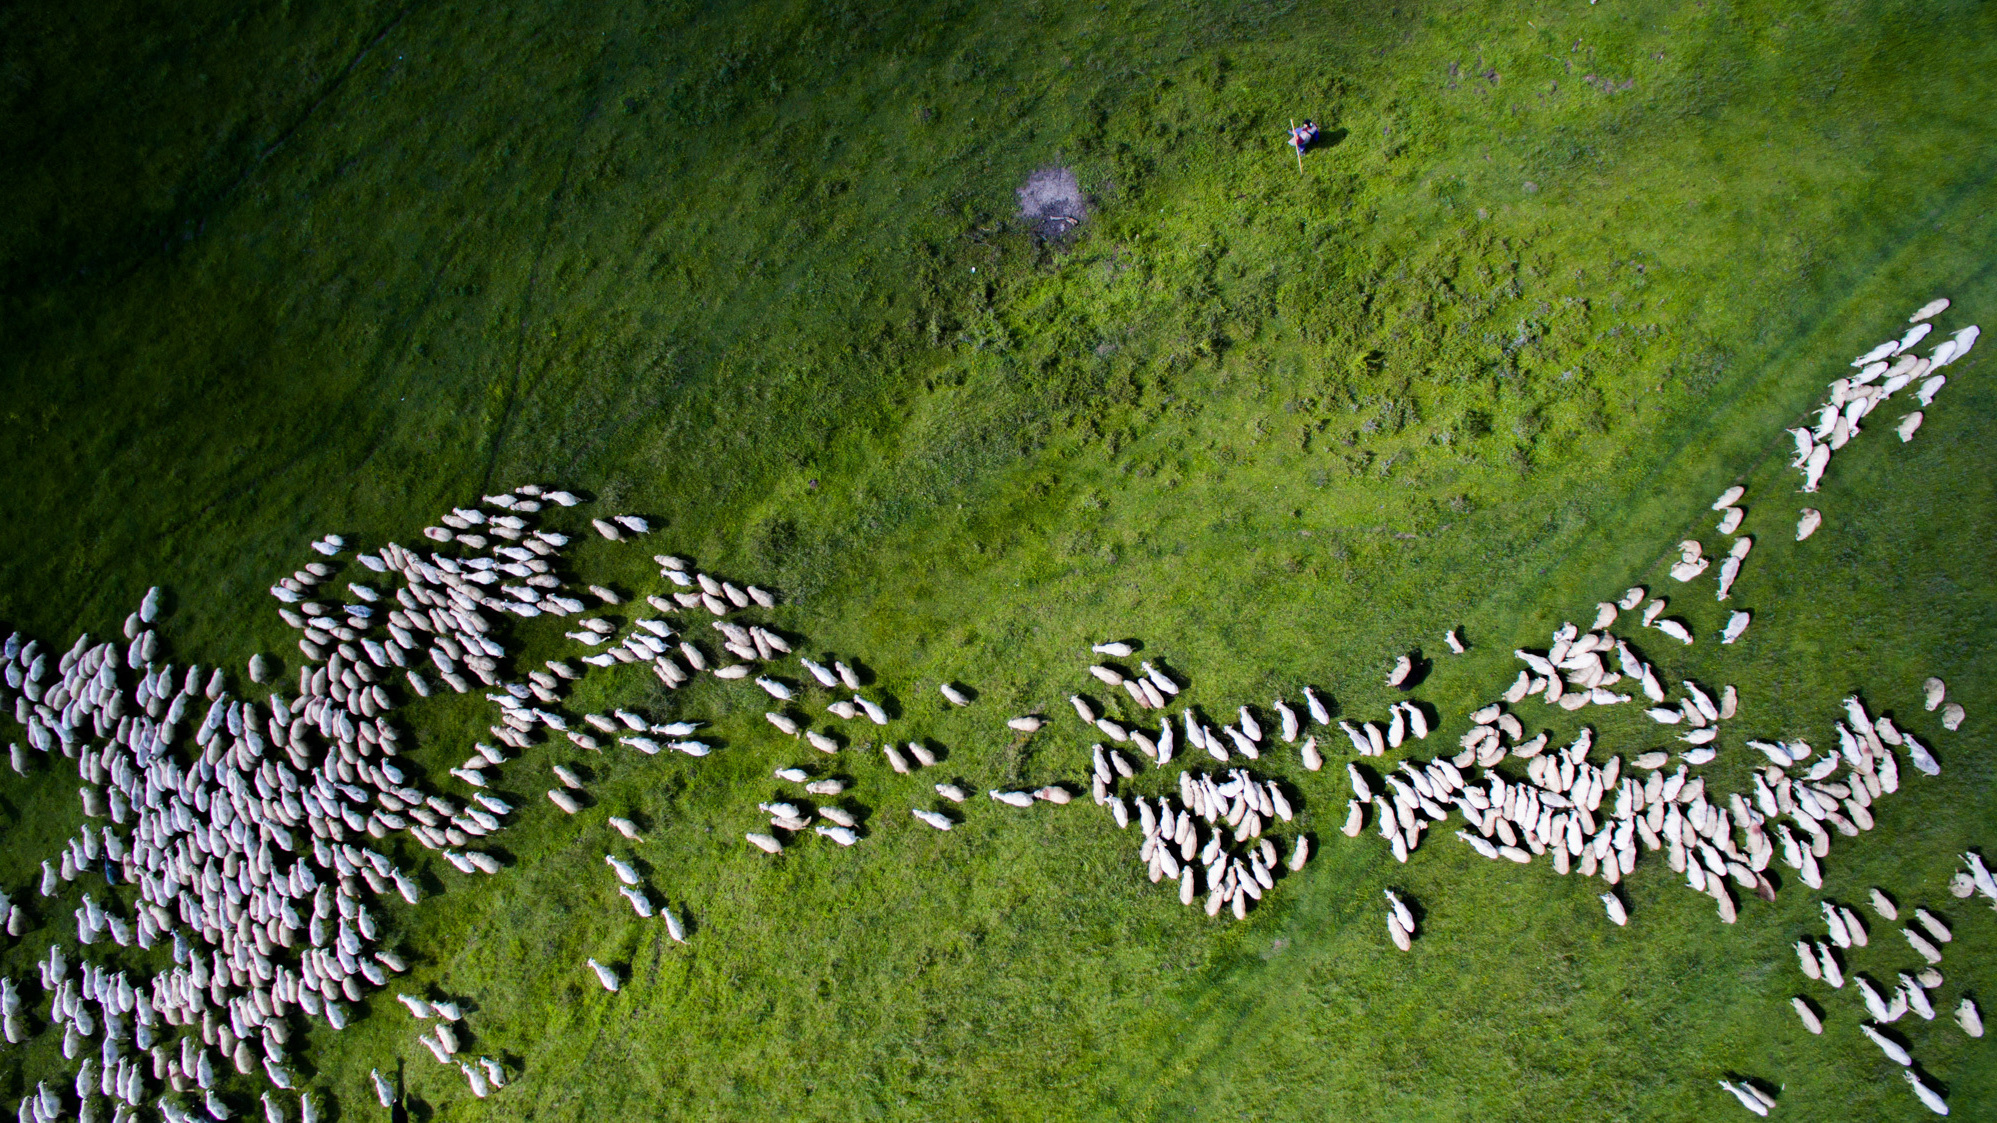 PHOTOS: A Drone's View Of The World